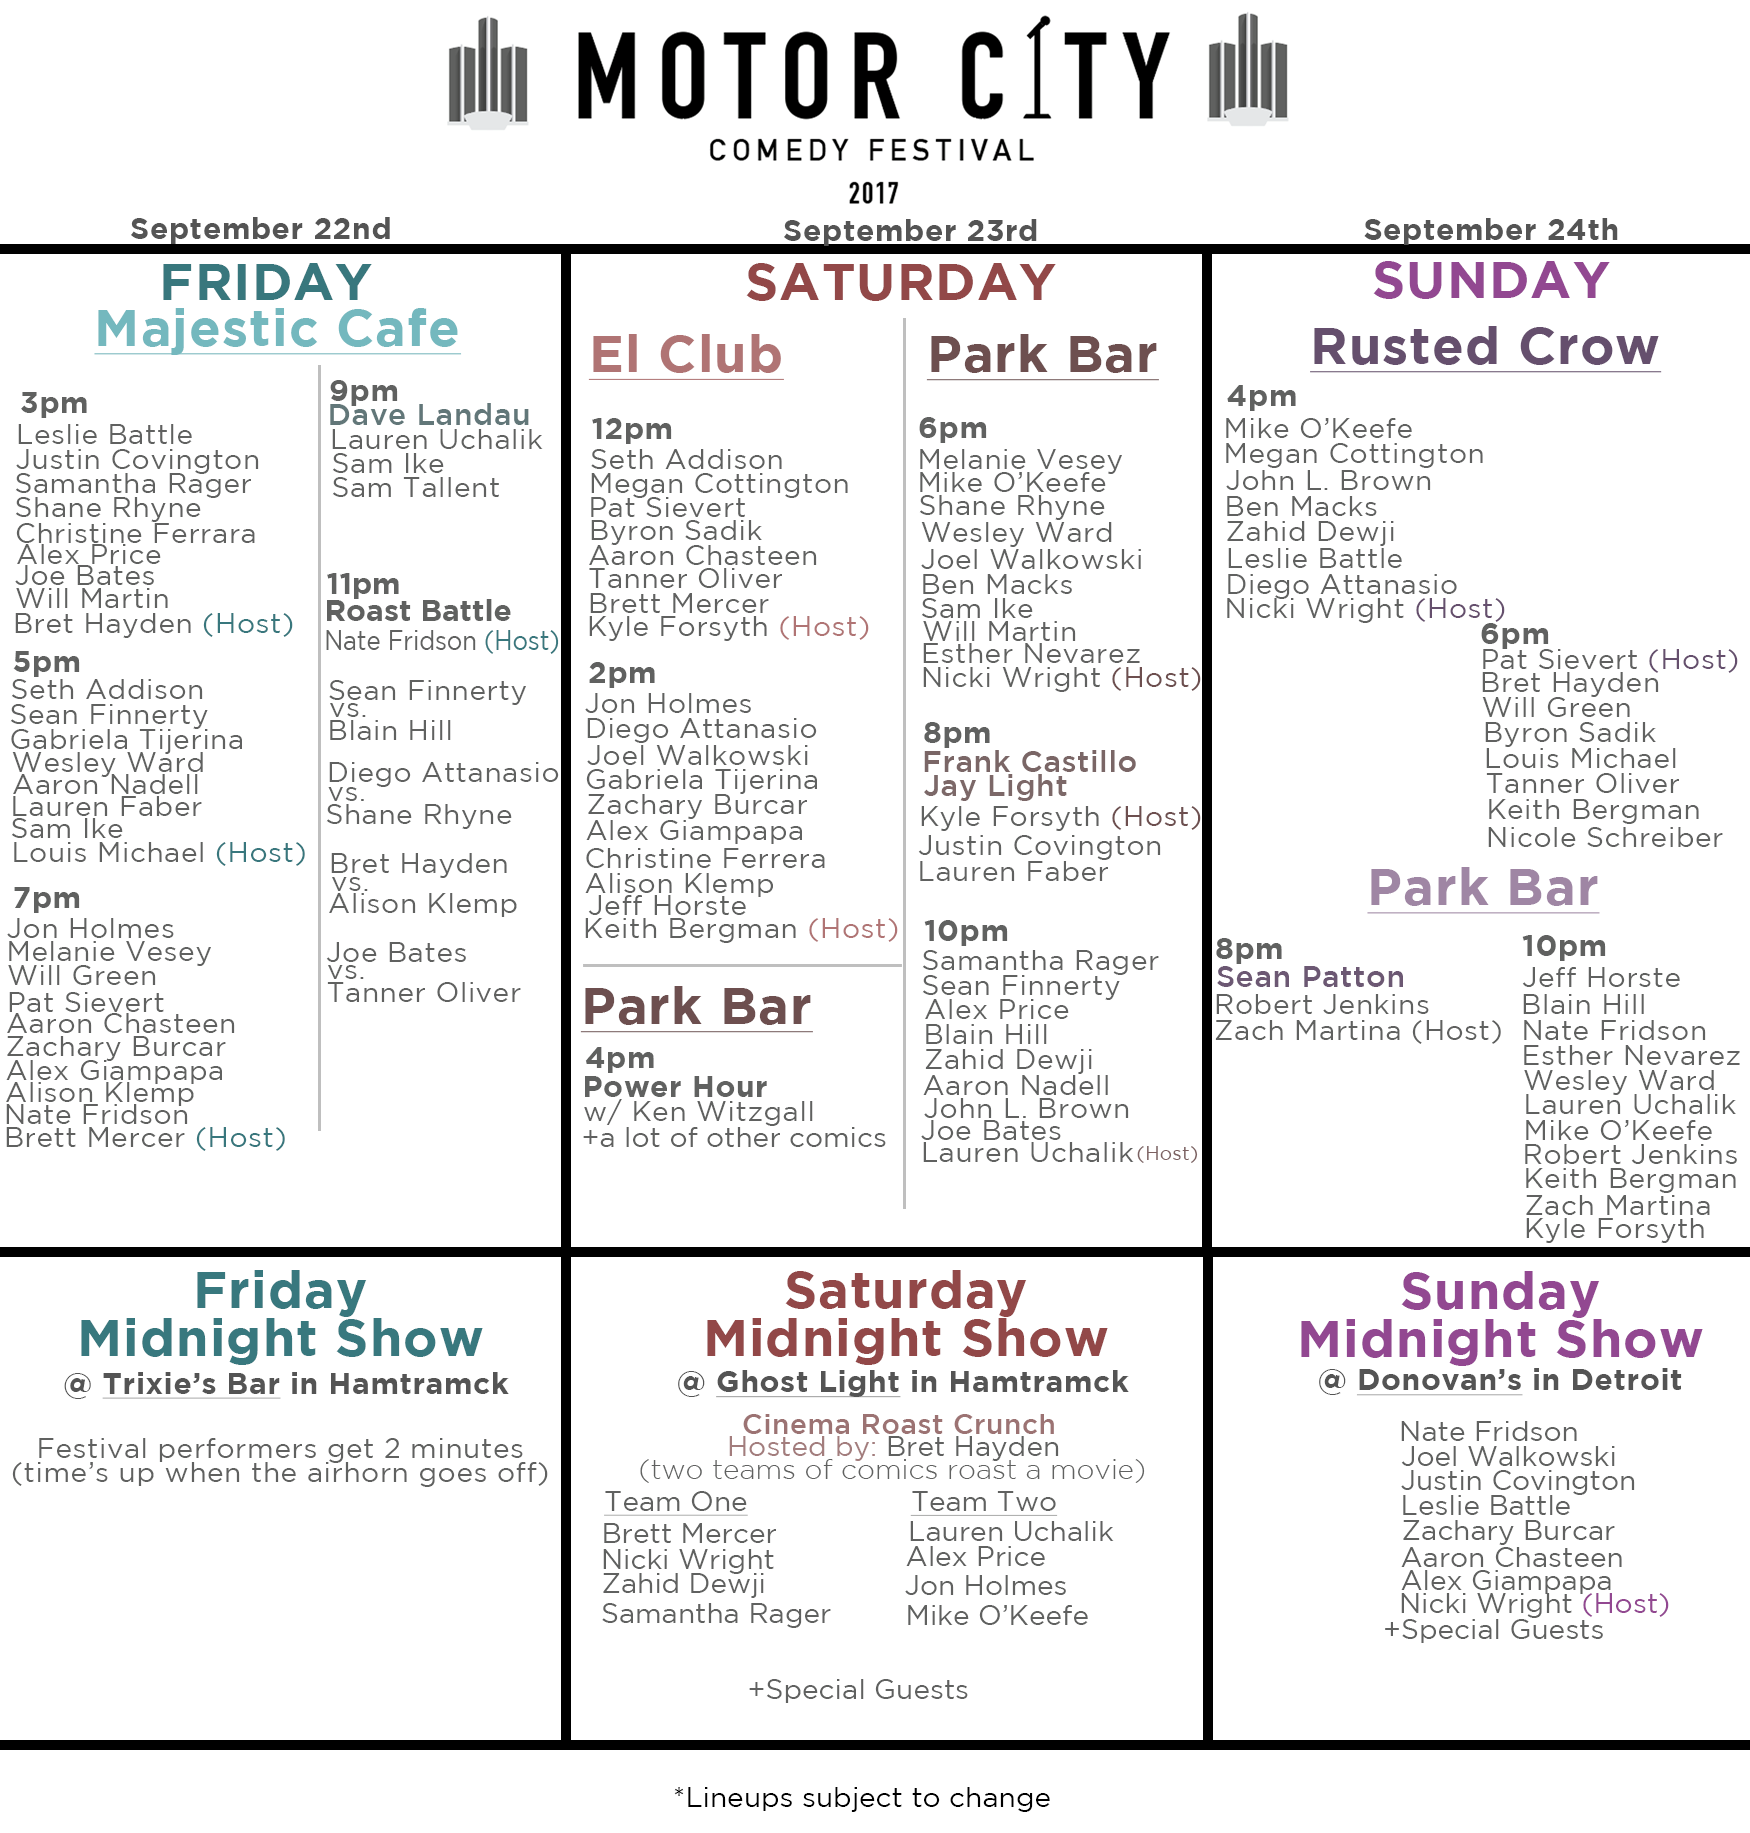 Schedule for 2017 Motor City Comedy Festival